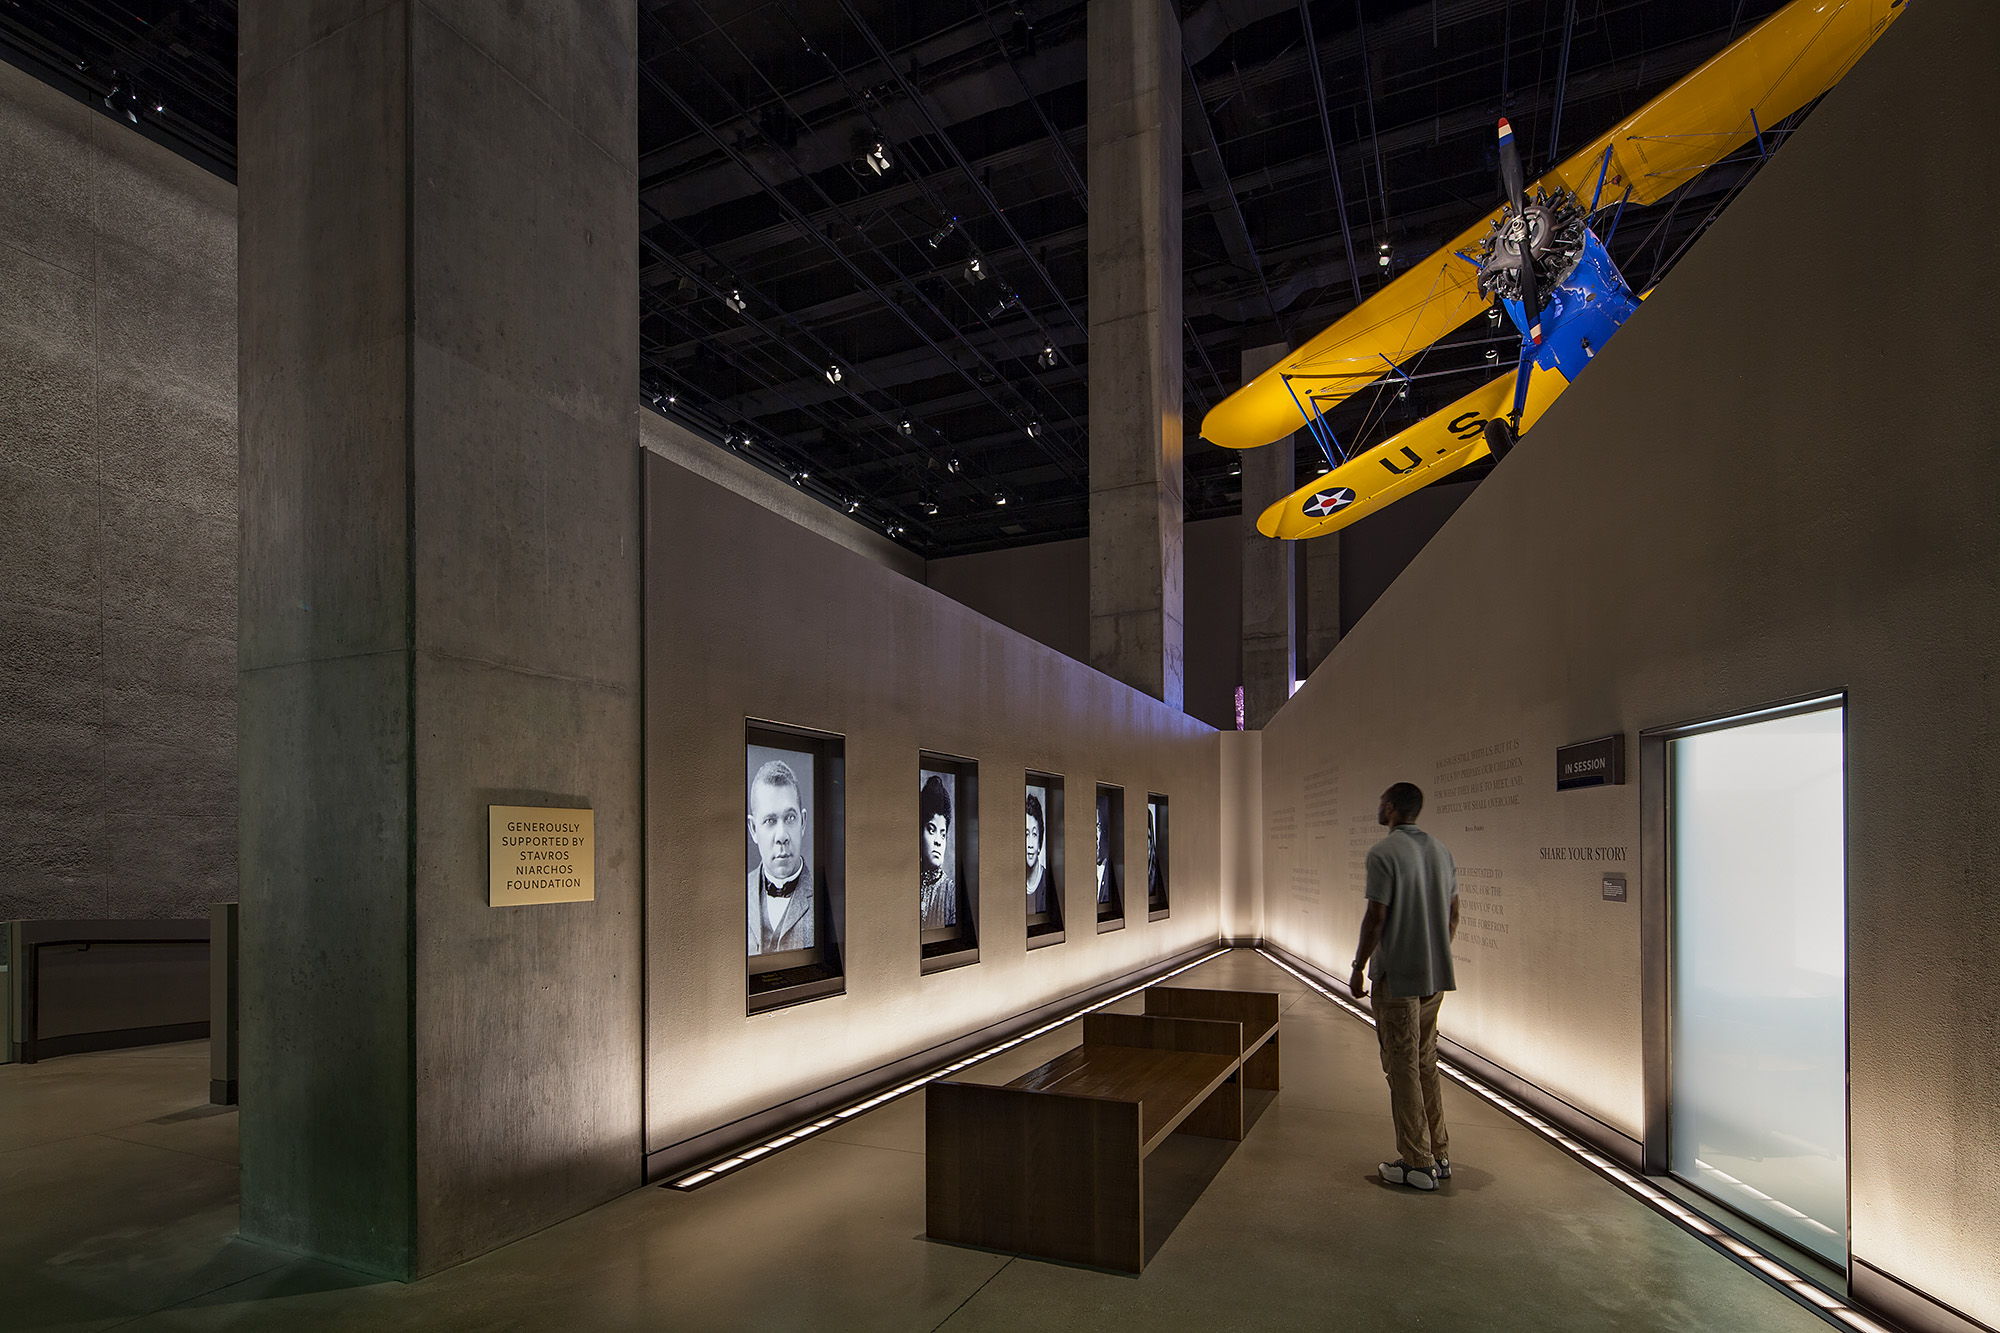 REFLECTIONS OF A GENERATION. Each History gallery has a space for reflection at the end of the gallery before rising up the ramps.  The reflection spaces s  urround the visitors with images and quotes from luminaries of the era.   Photo credit: Ron Blunt